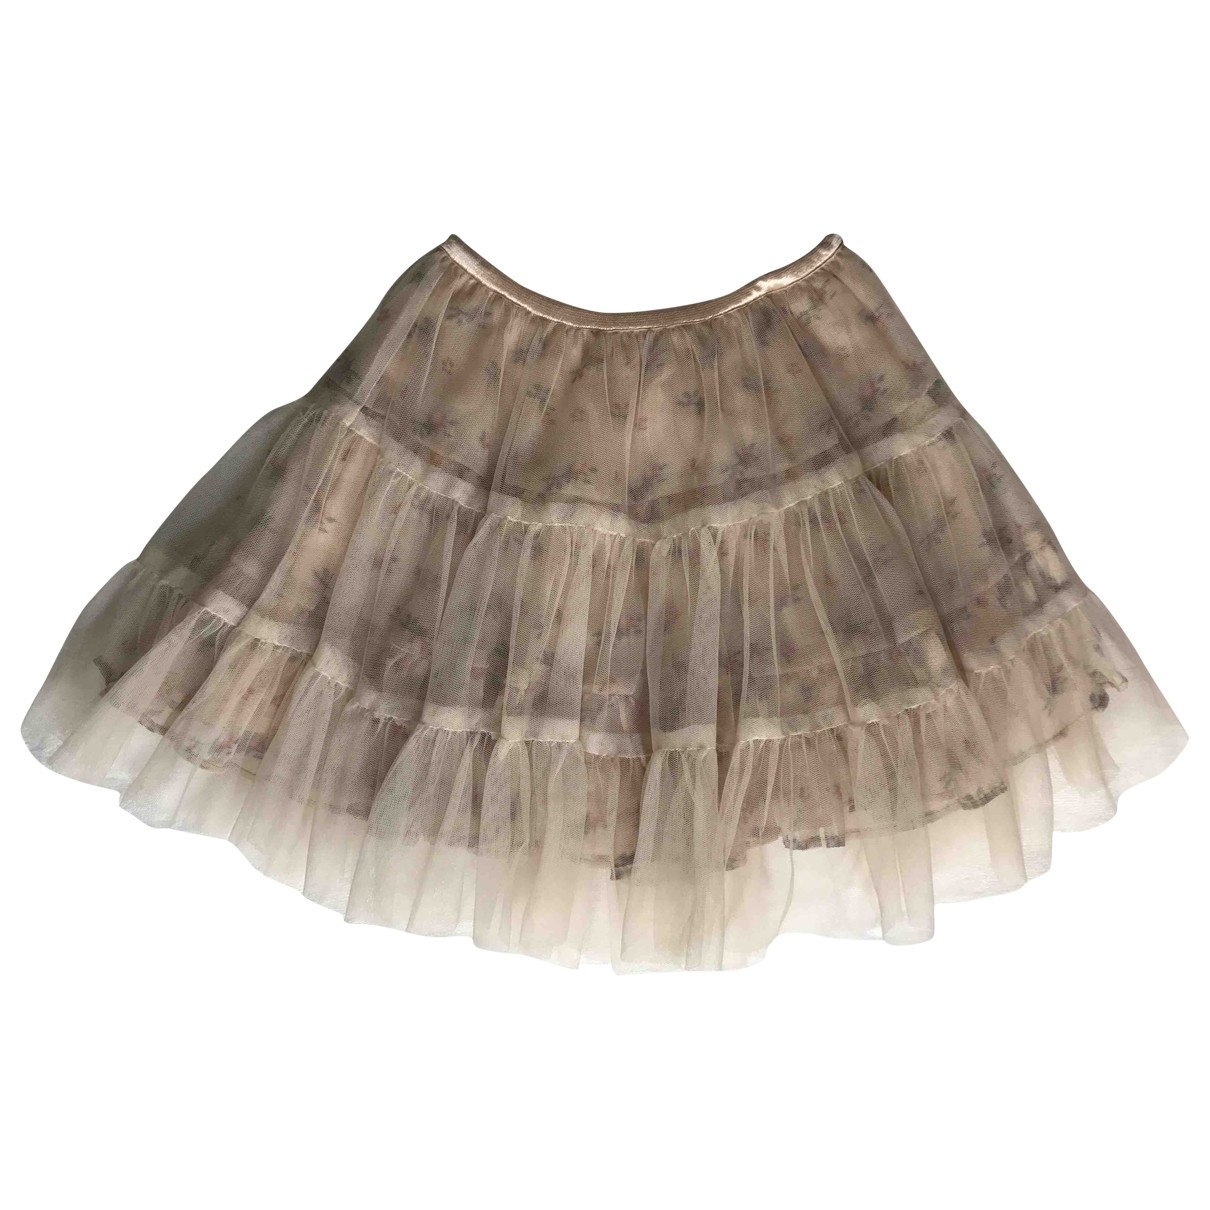 Paul Smith \N Pink skirt for Kids 6 years - up to 114cm FR